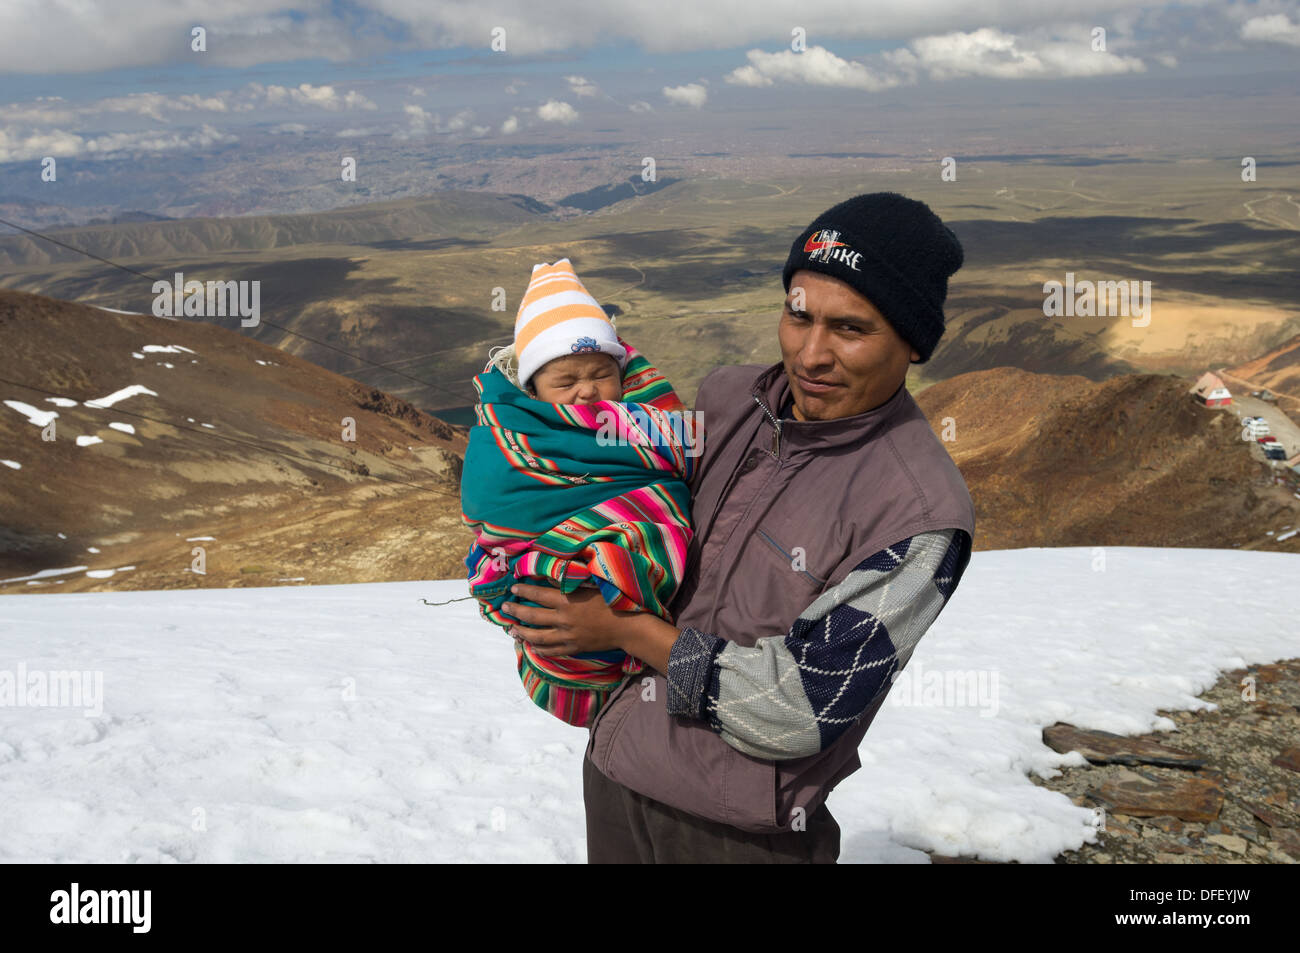 Bolivian father carrying his newborn child to the 5421 metre (17,785 ft) summit of Chacaltaya as a local tradition, showing the remnants of the Chacaltaya Glacier, near La Paz, Bolivia - Stock Image